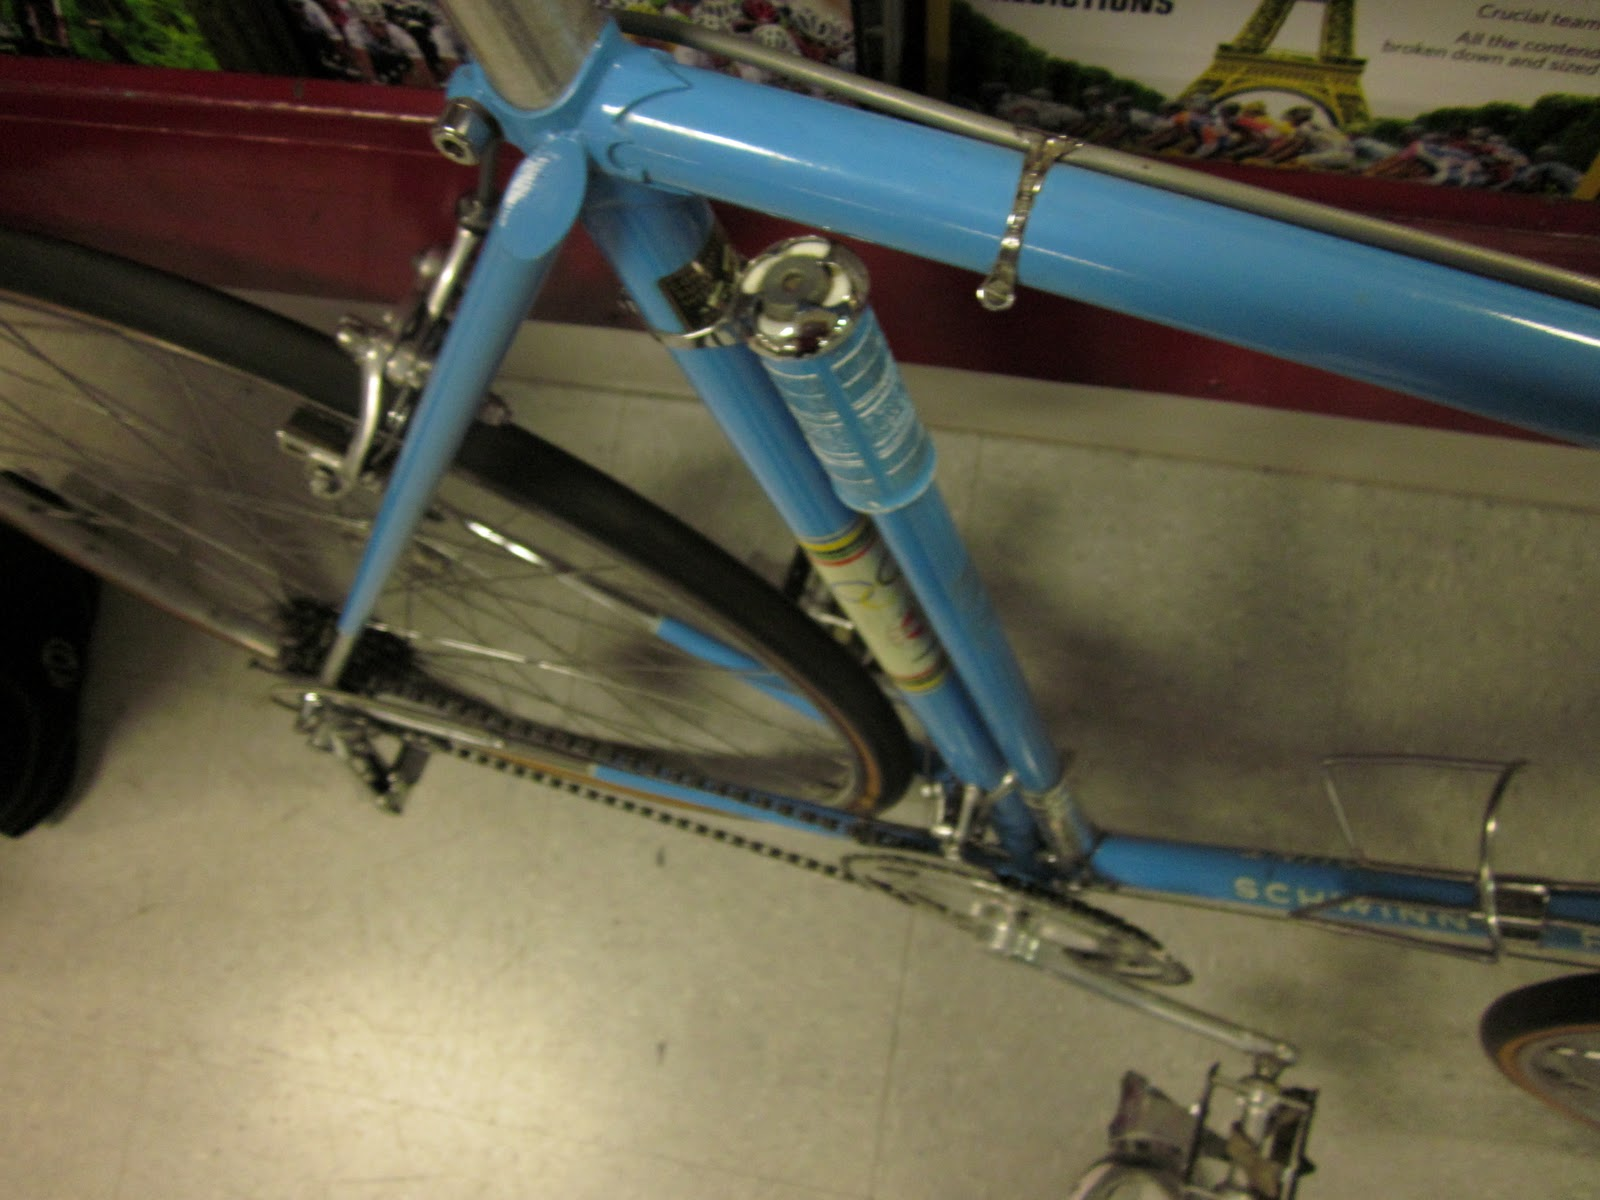 the silca frame pump colored to match is a lovely touch and something you only see on fully custom frames anymore